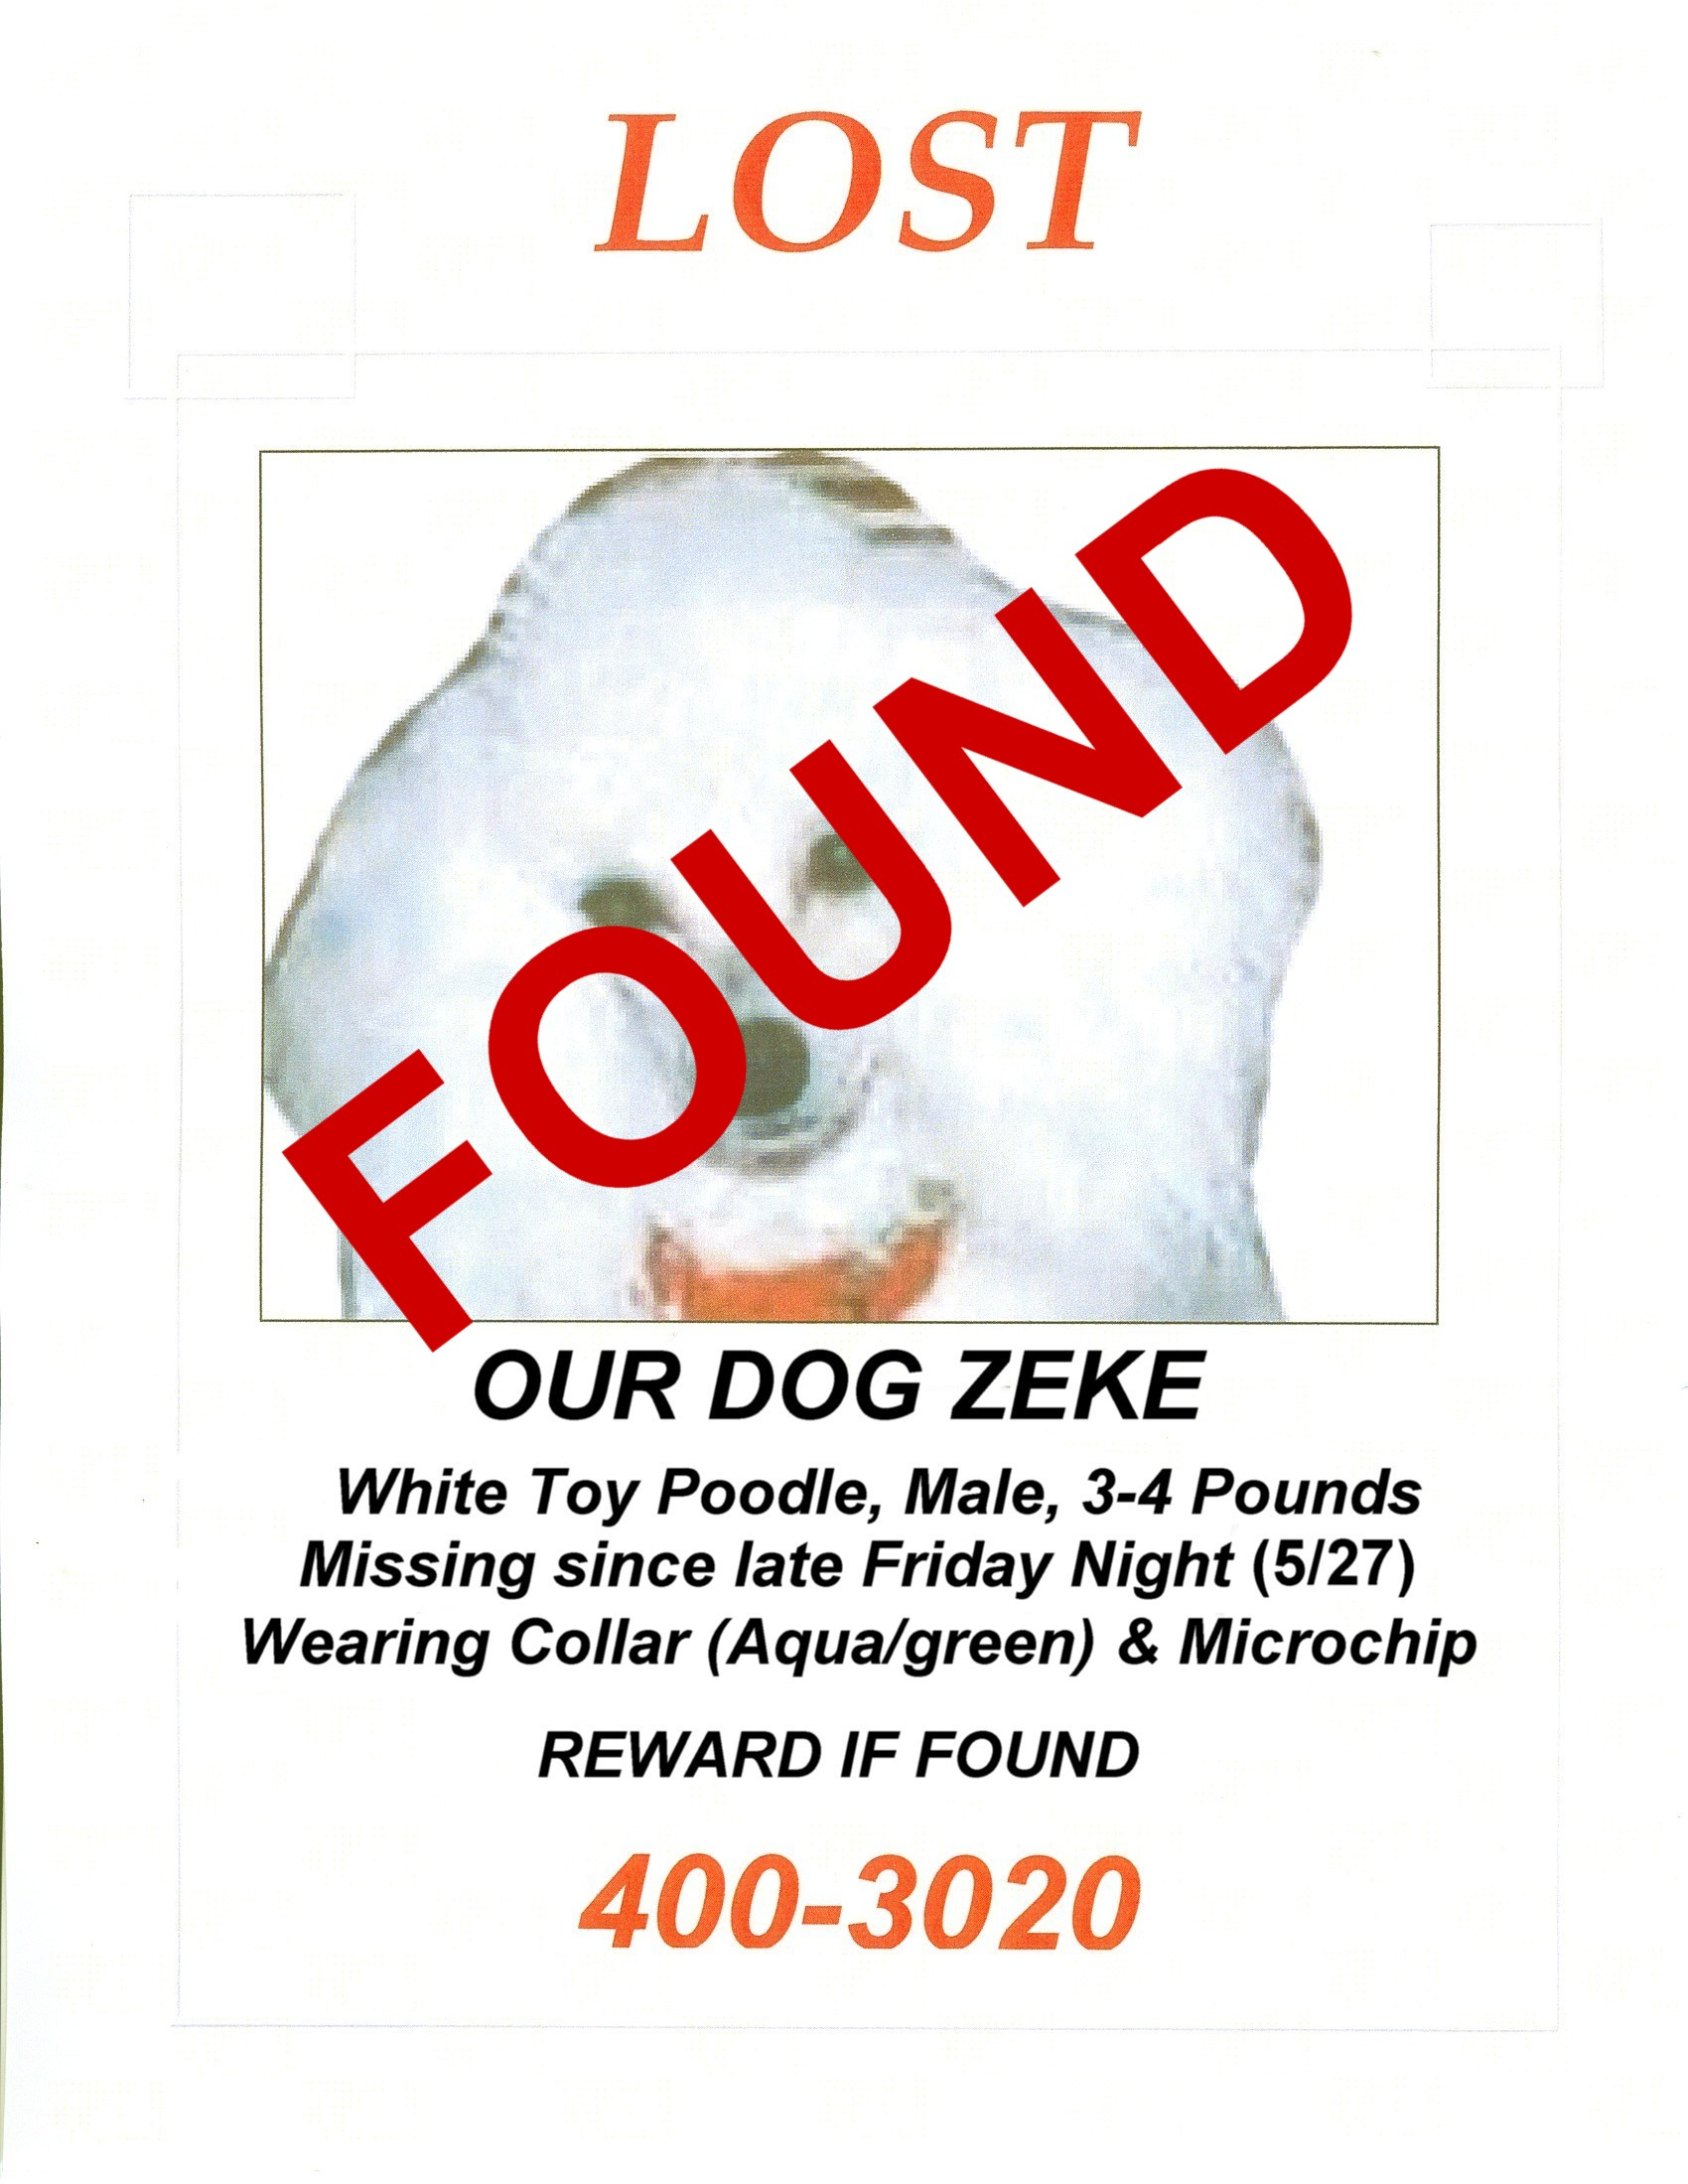 Found 5/28/2006 approx. 10:00 p.m.